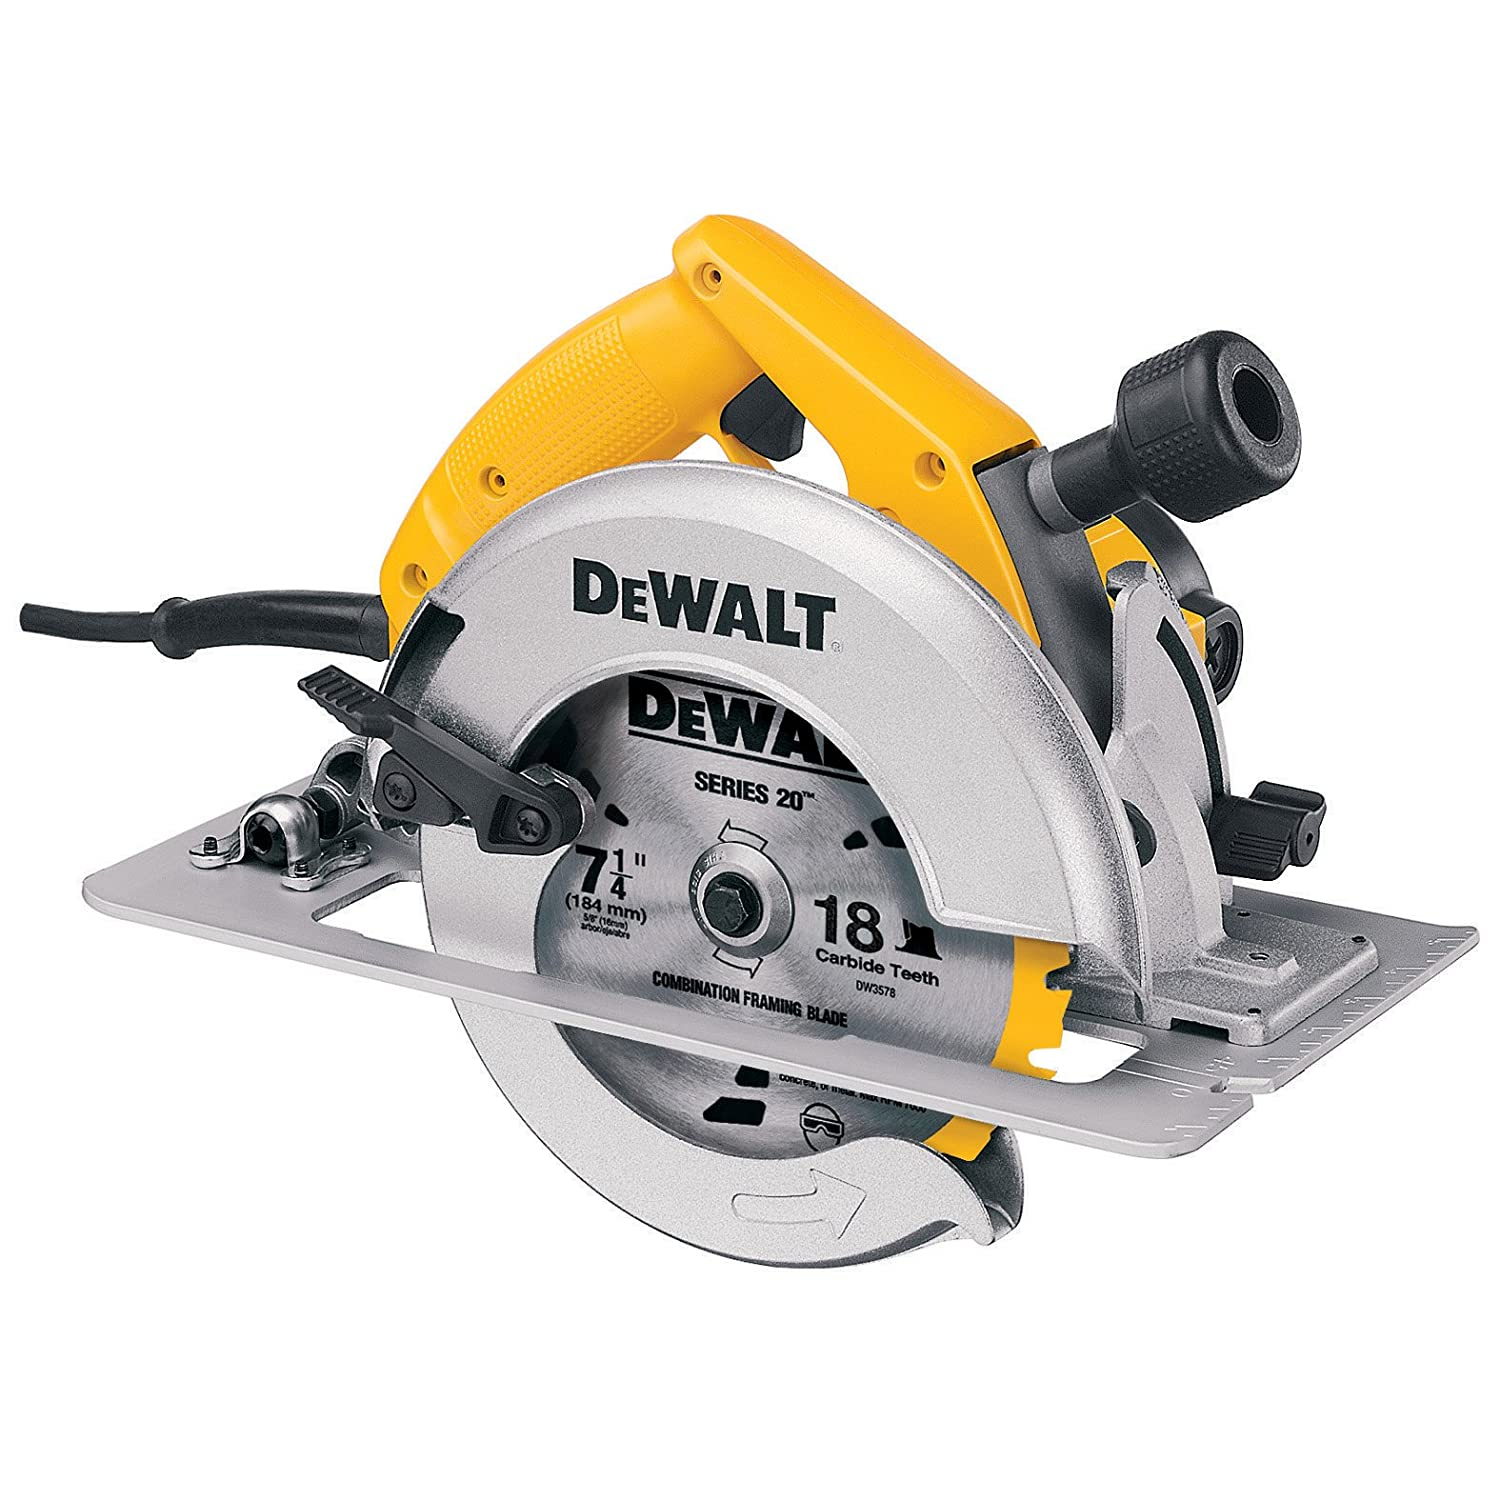 Dewalt dw364 7 14 inch circular saw with electric brake and rear dewalt dw364 7 14 inch circular saw with electric brake and rear pivot depth of cut adjustment power circular saws amazon greentooth Gallery